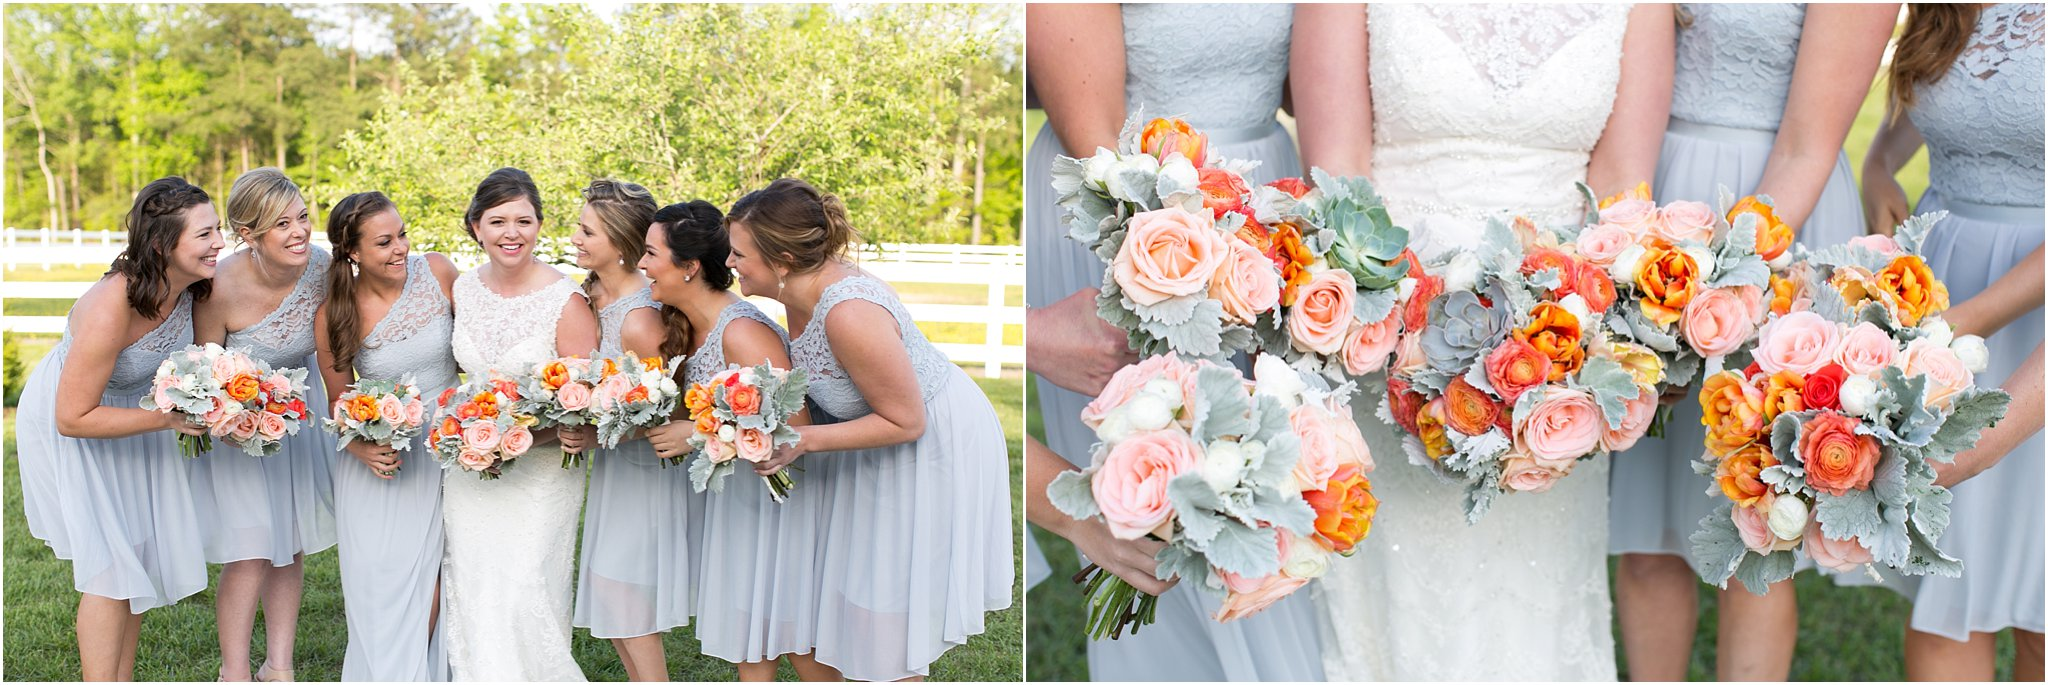 jessica_ryan_photography_holly_ridge_manor_wedding_roost_flowers_jamie_leigh_events_dhalia_edwards_candid_vibrant_wedding_colors_1311